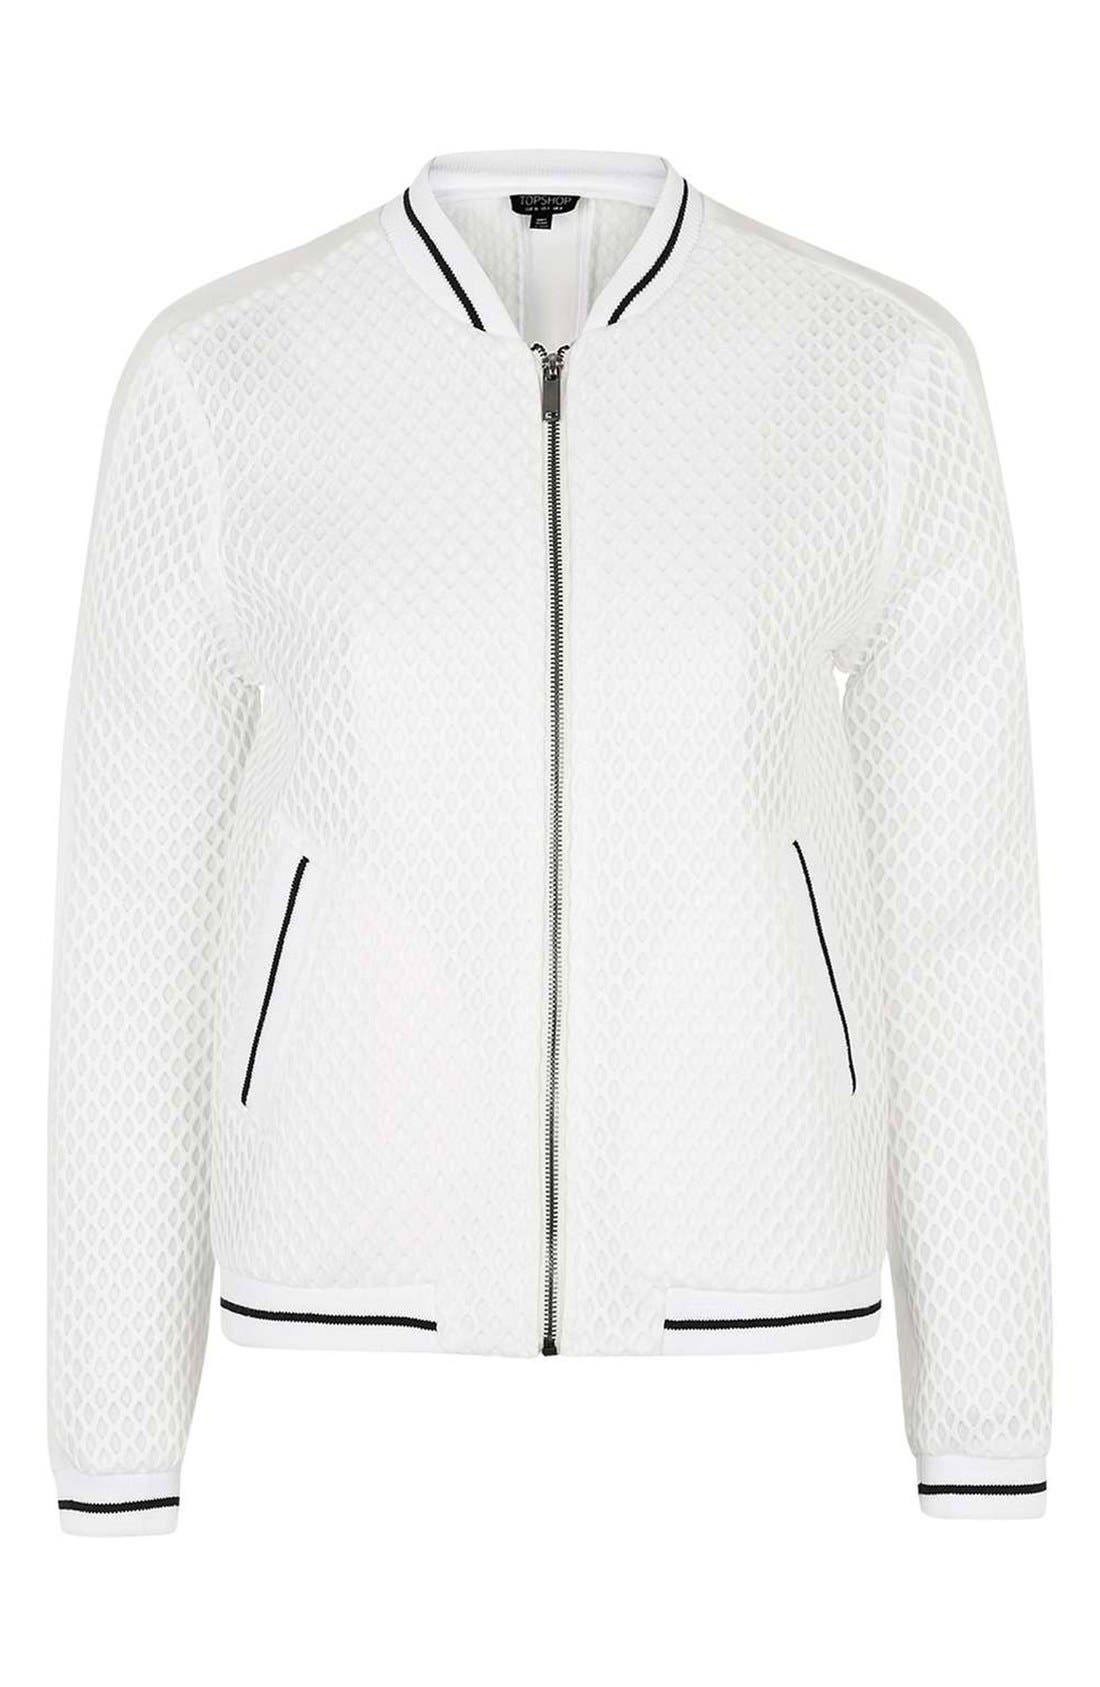 Diamond Airtex Bomber Jacket,                             Alternate thumbnail 4, color,                             Ivory